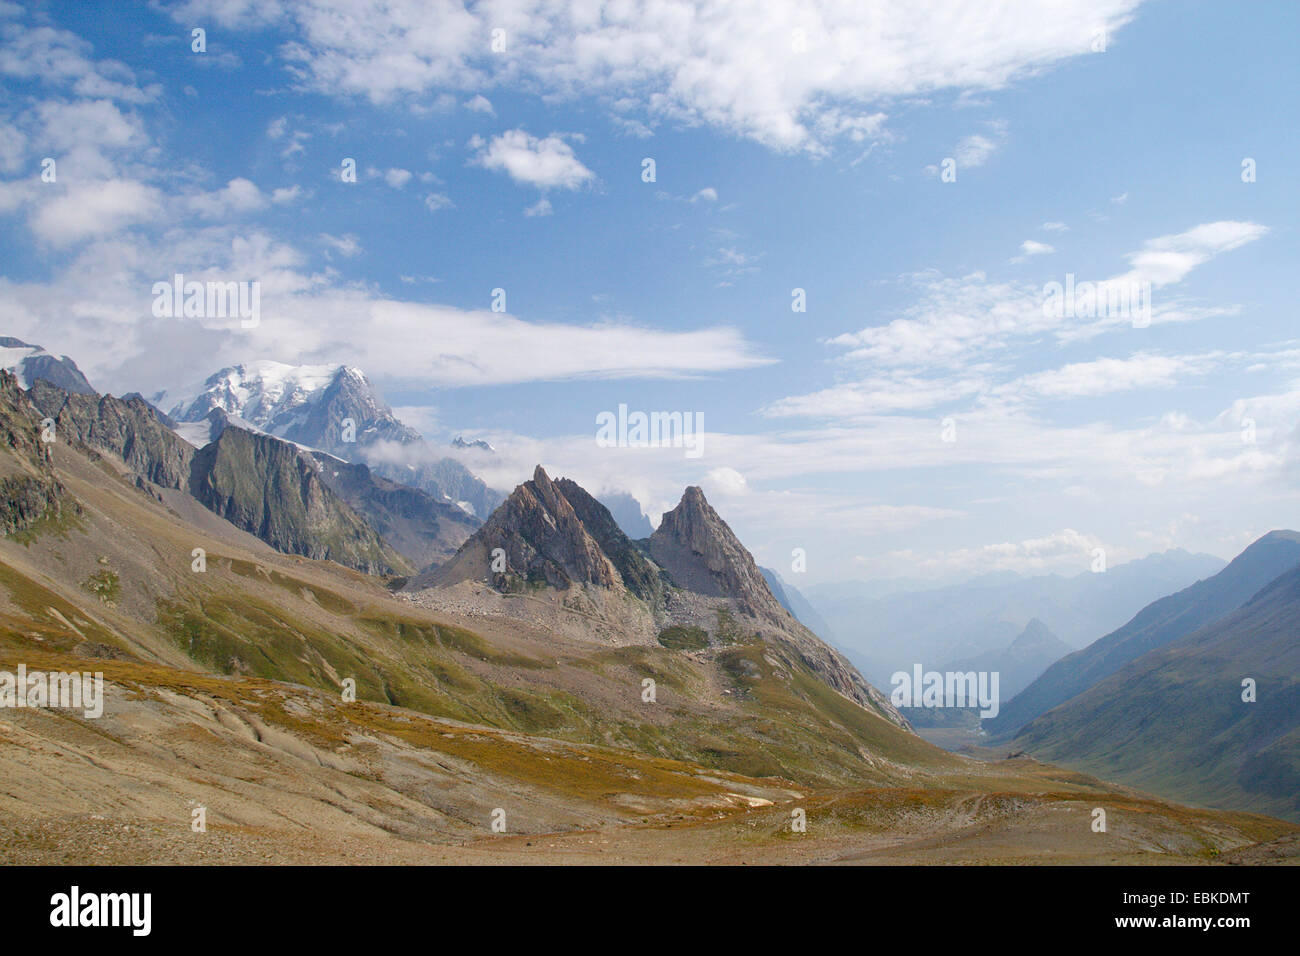 view from Col de la Seigne (France/Italy) to teh Val Veny (Italy), with Mont Blanc and Pyramides Calcaires, France - Stock Image